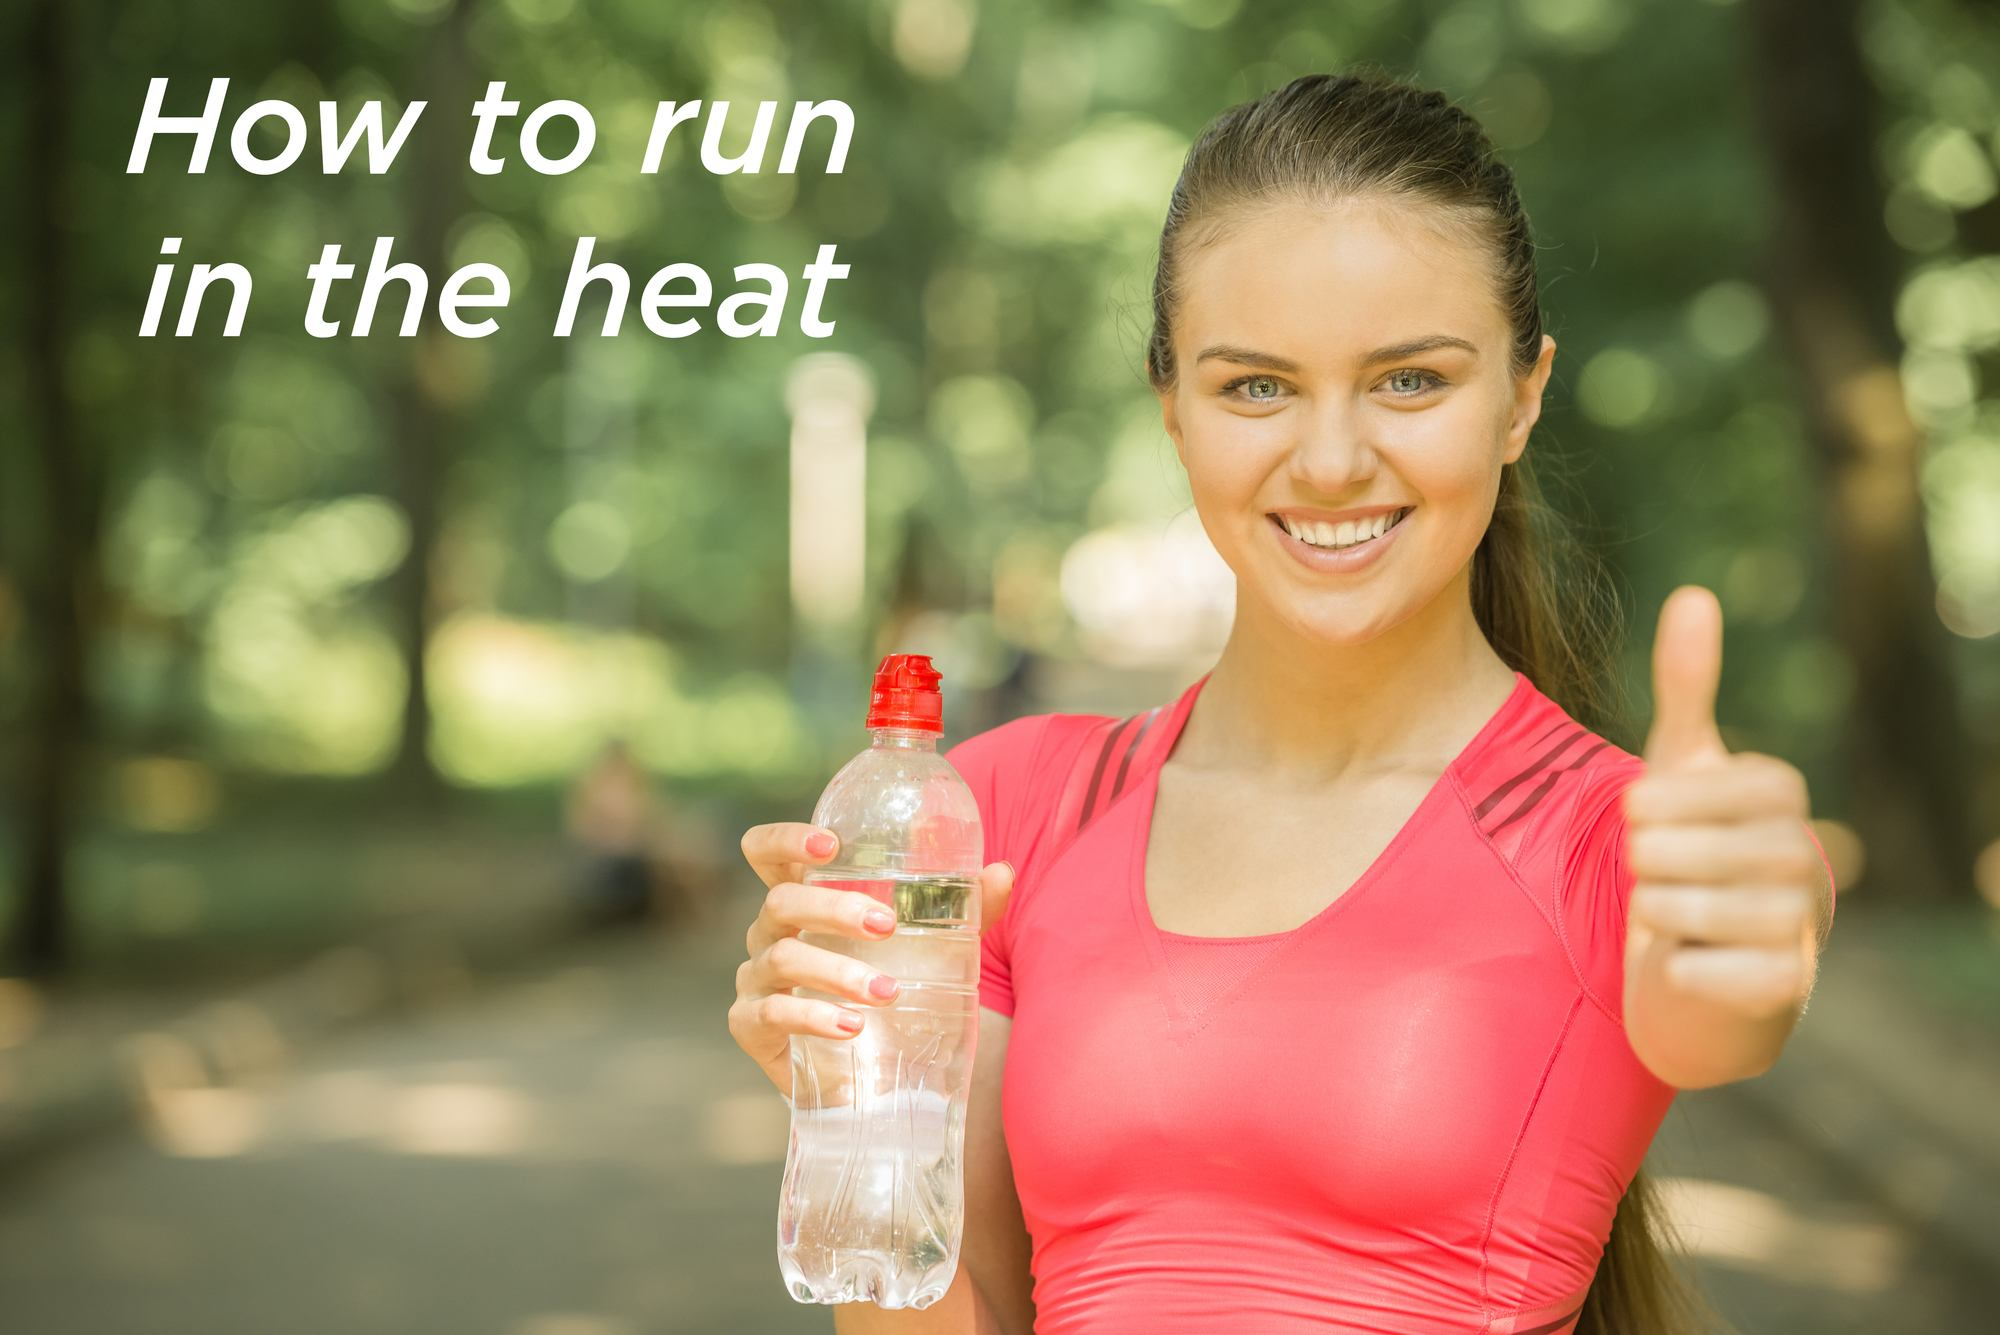 How to run in the heat?